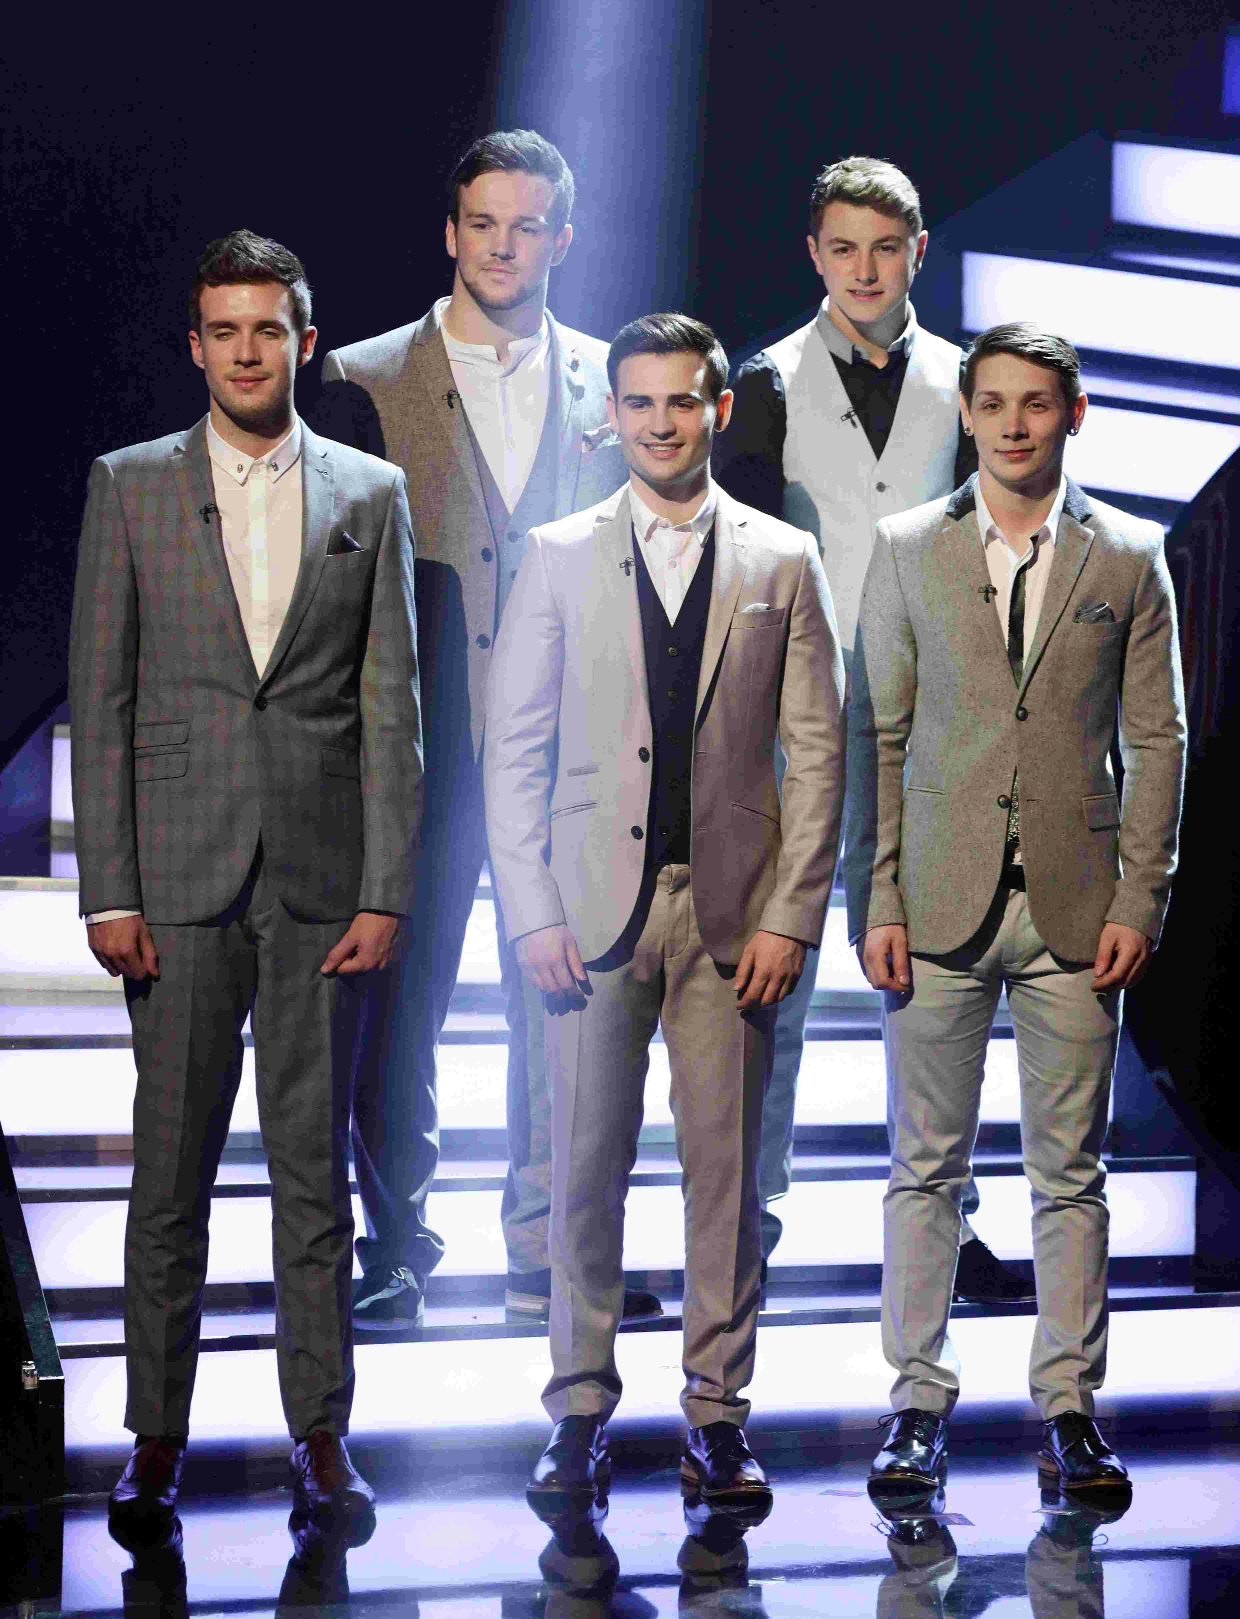 BGT 2014 winners Collabro